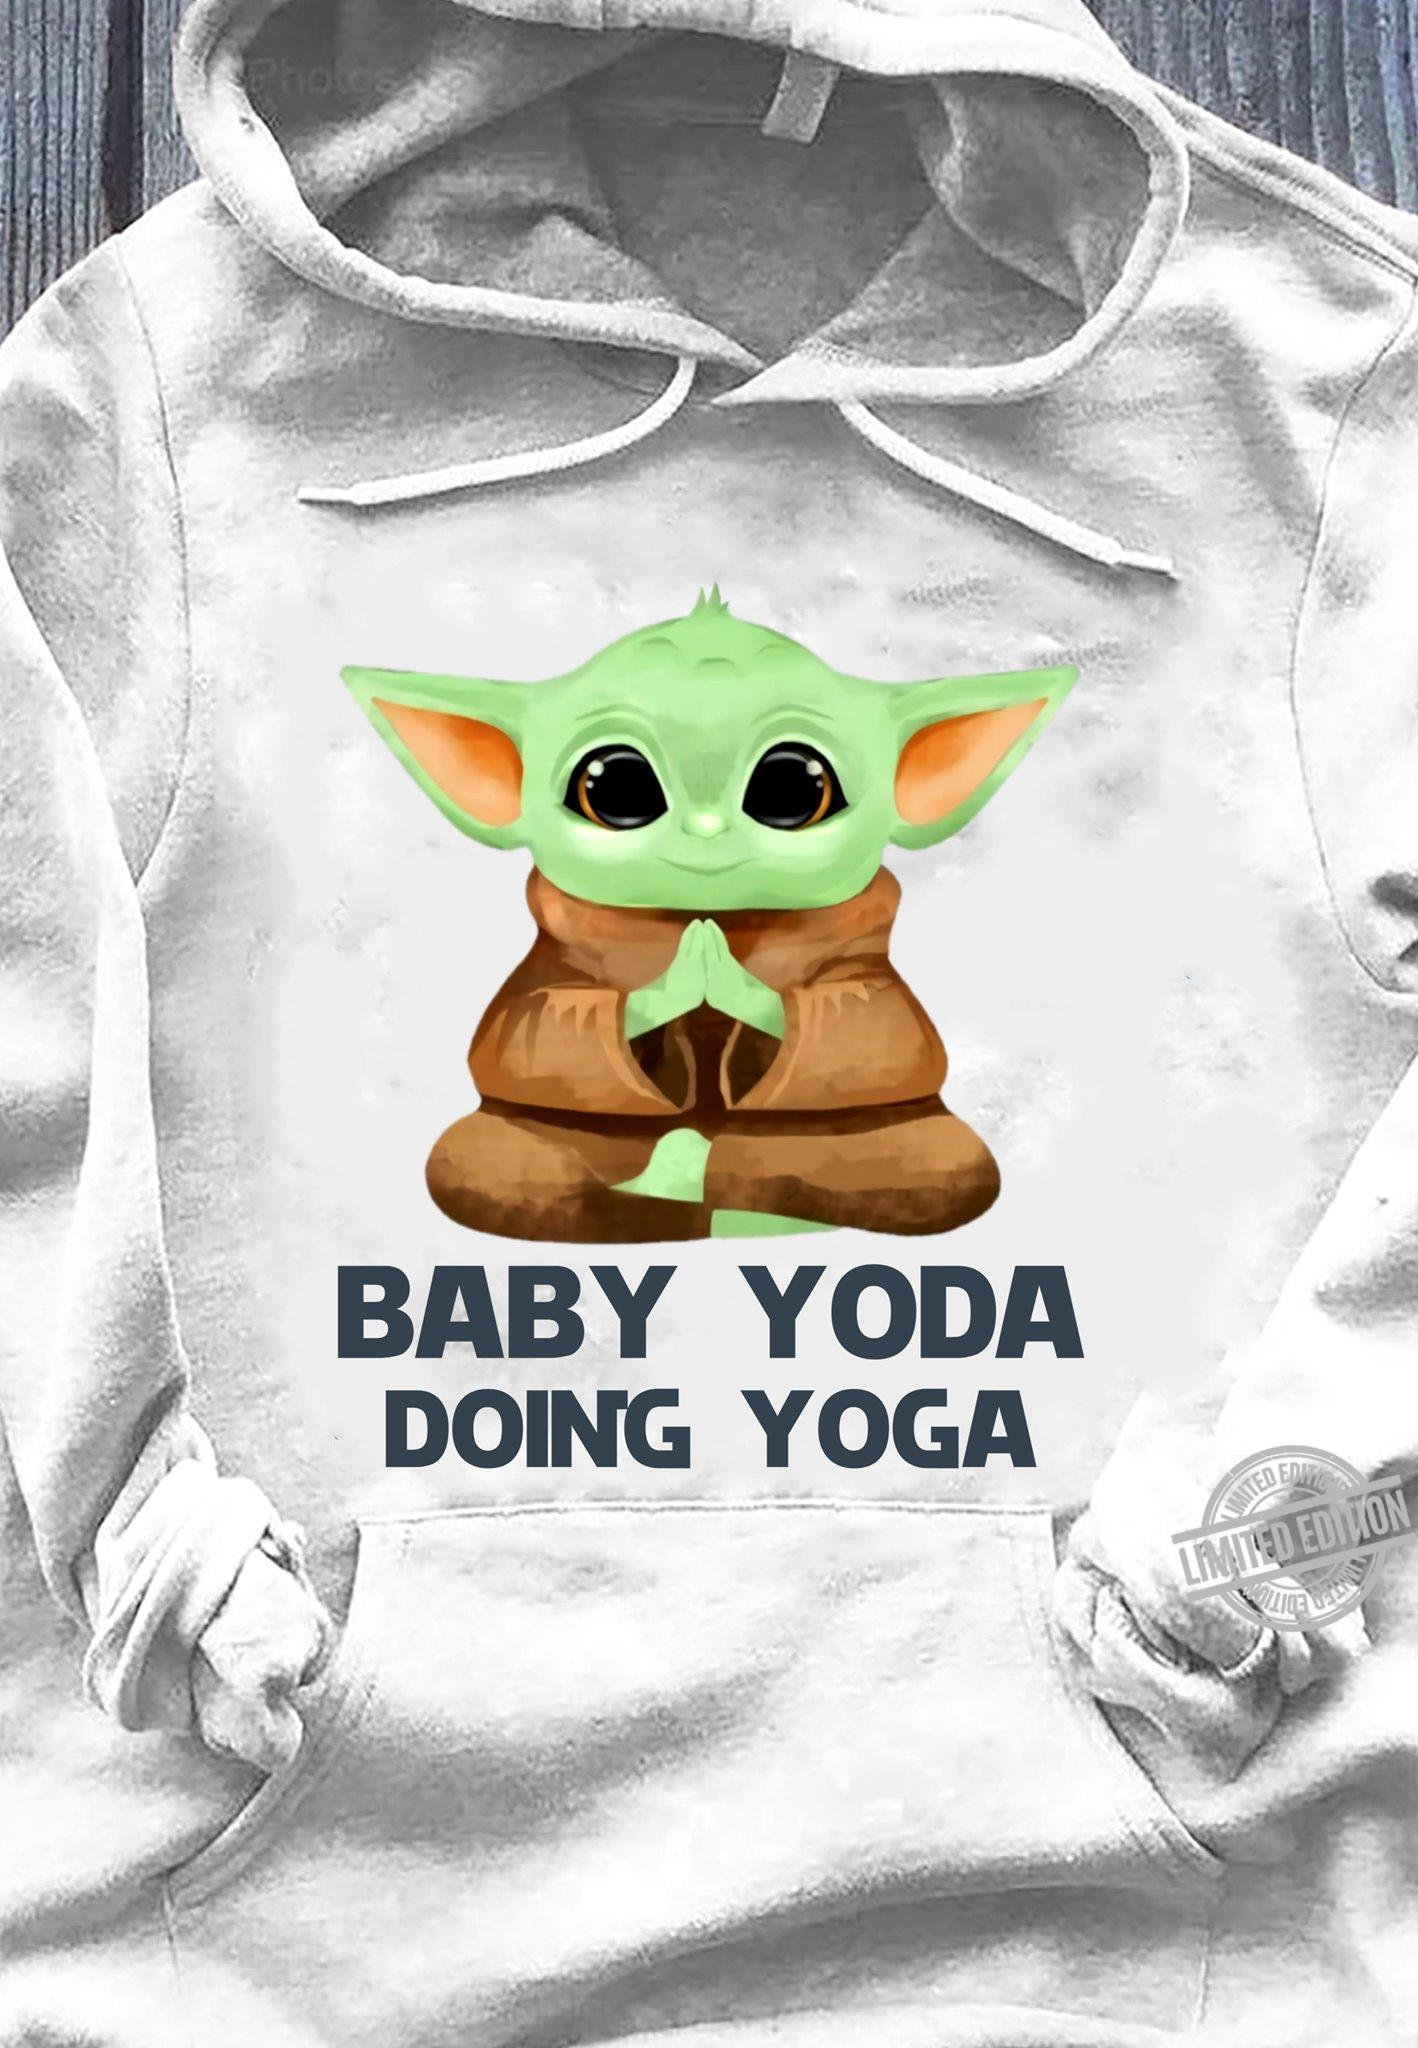 Baby Yoda Doing Yoga Shirt